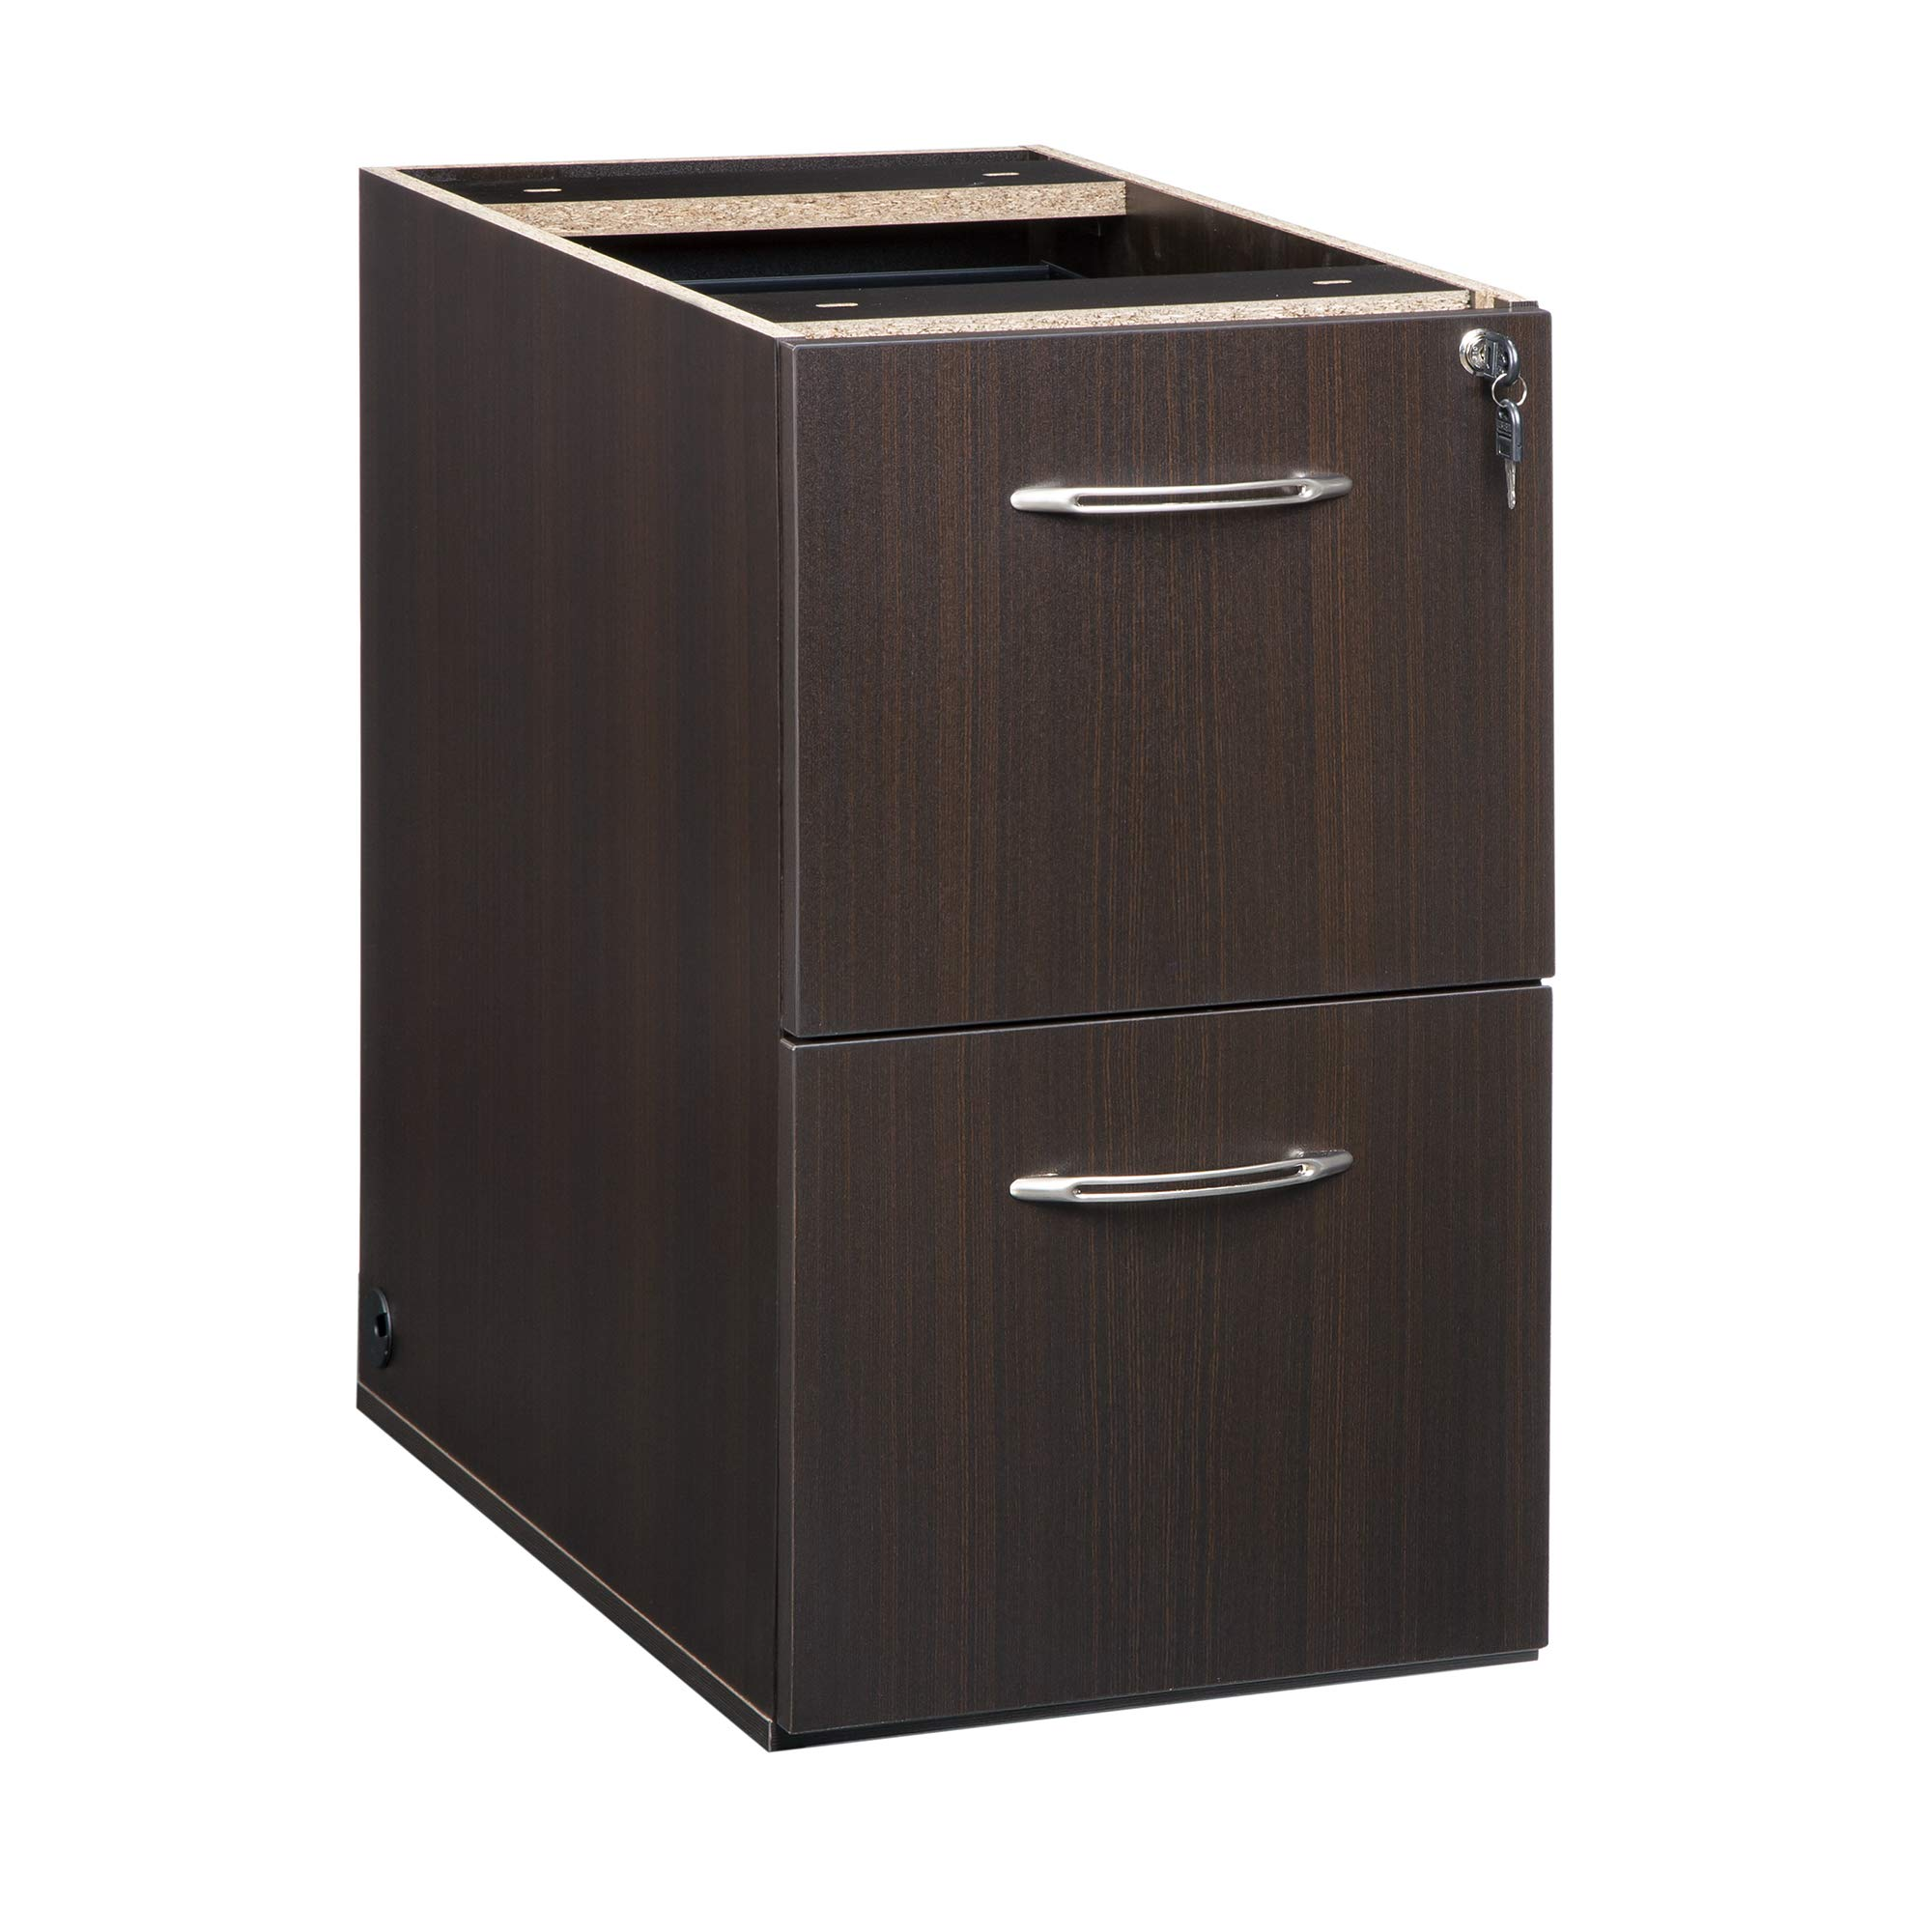 Mayline AFF20LDC Aberdeen 20''D Pedestal FF,for use with Credenza, Return, and Extended Corner, sold separately, Mocha Tf